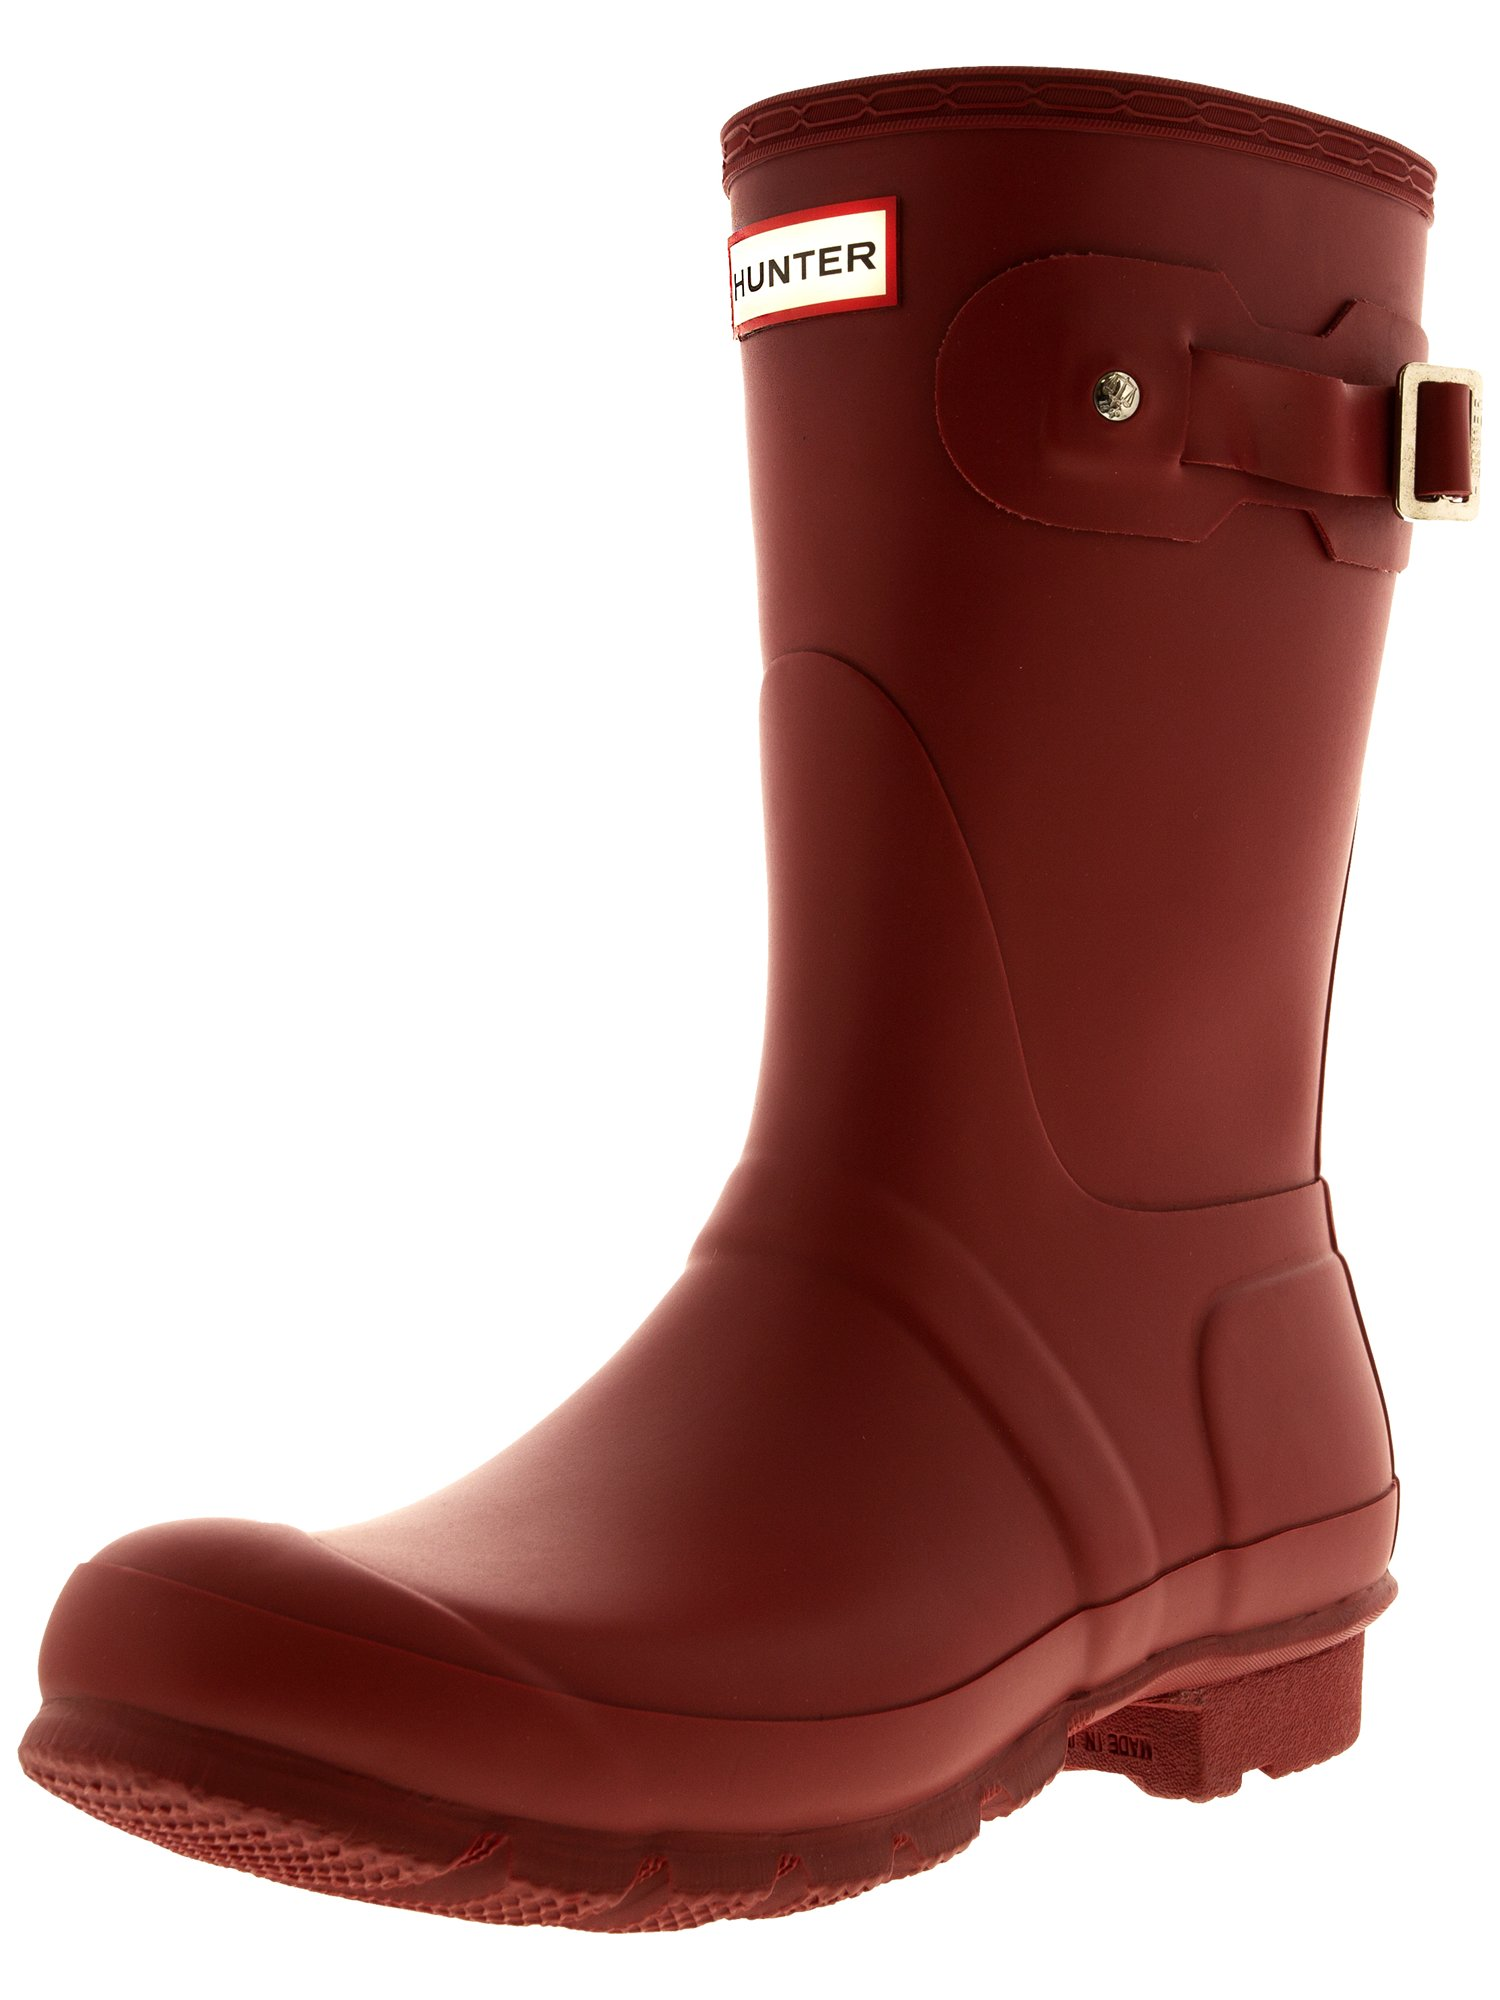 7a036fa9d122 AreaTrend: Hunter Women's Original Short Rubber Rain Boot | Rakuten.com